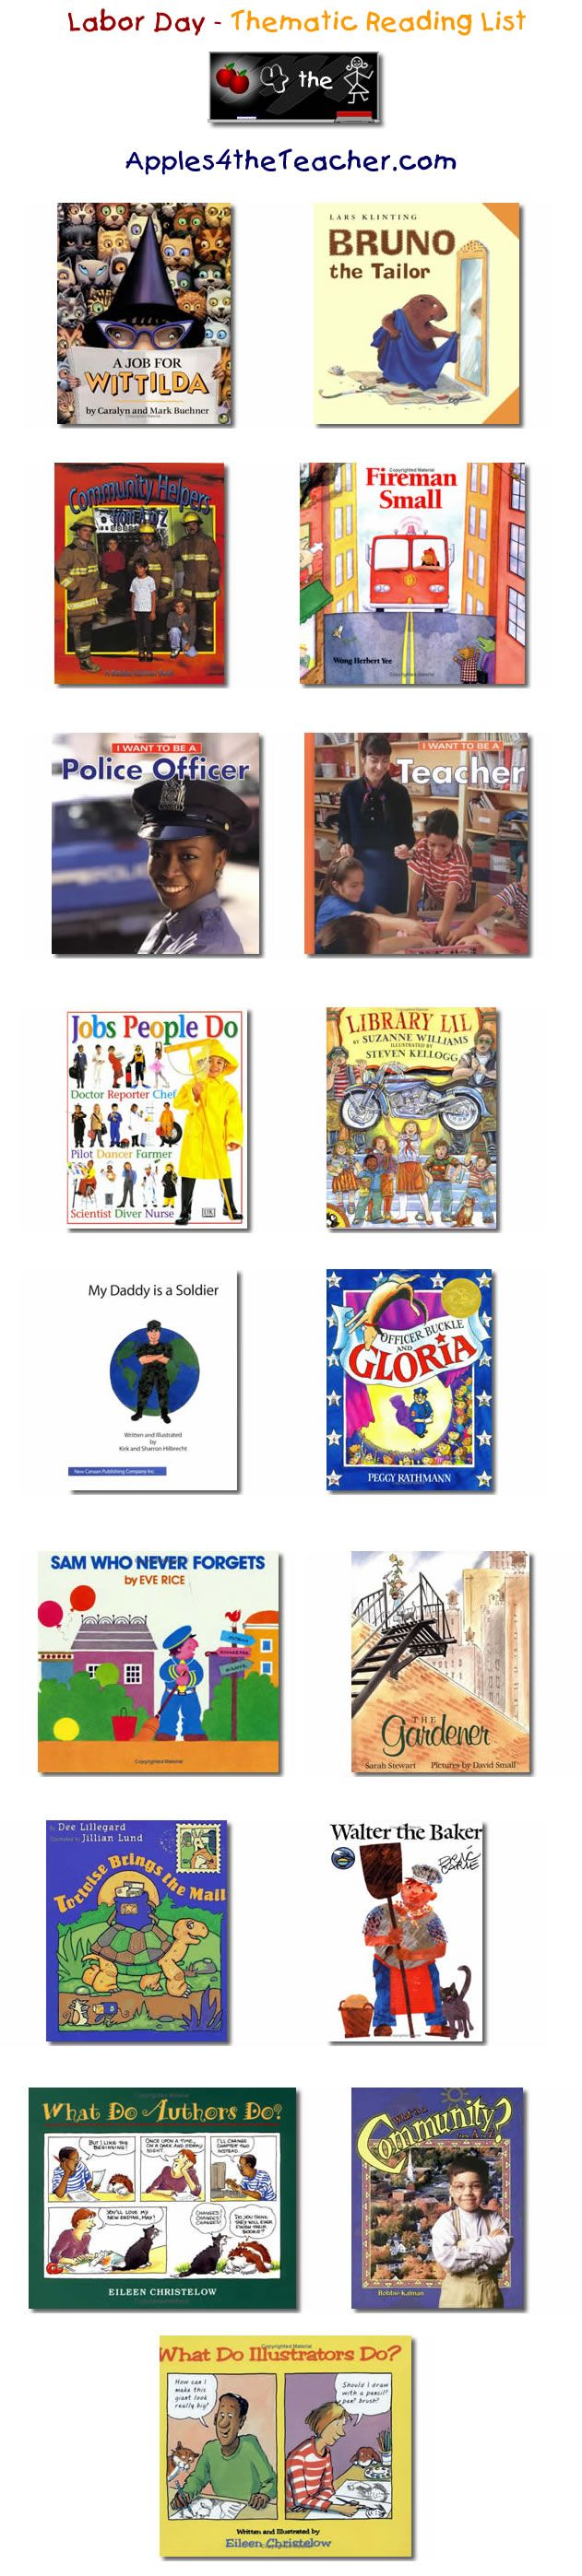 medium resolution of Suggested thematic reading list for Labor Day - Labor Day books for kids.    Kids learning activities